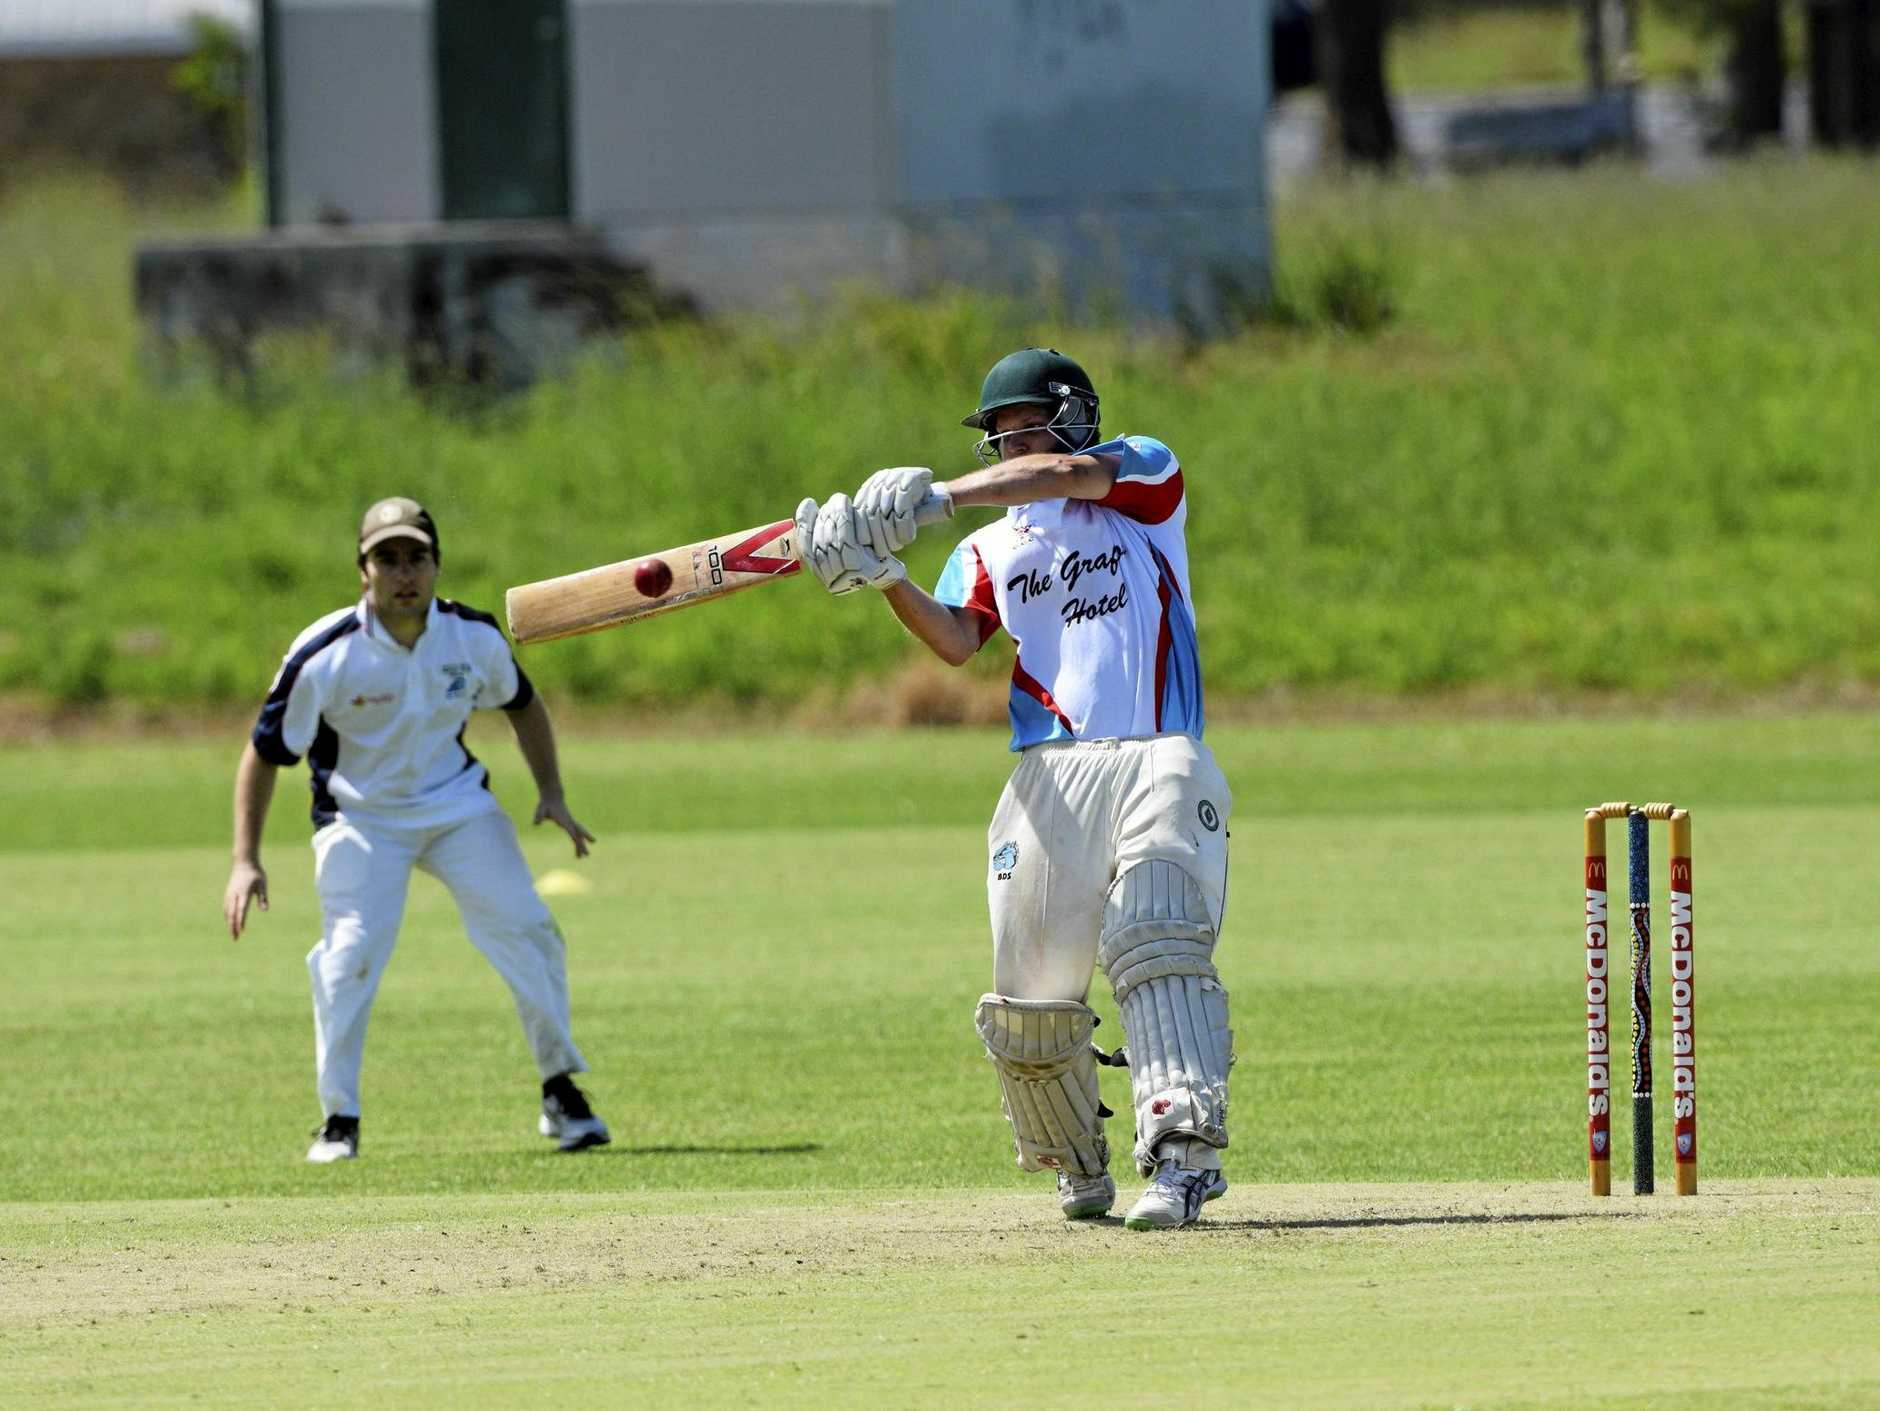 HIT OUT OR GET OUT: Trent Statham launches into a pull shot for the Colts on Saturday.